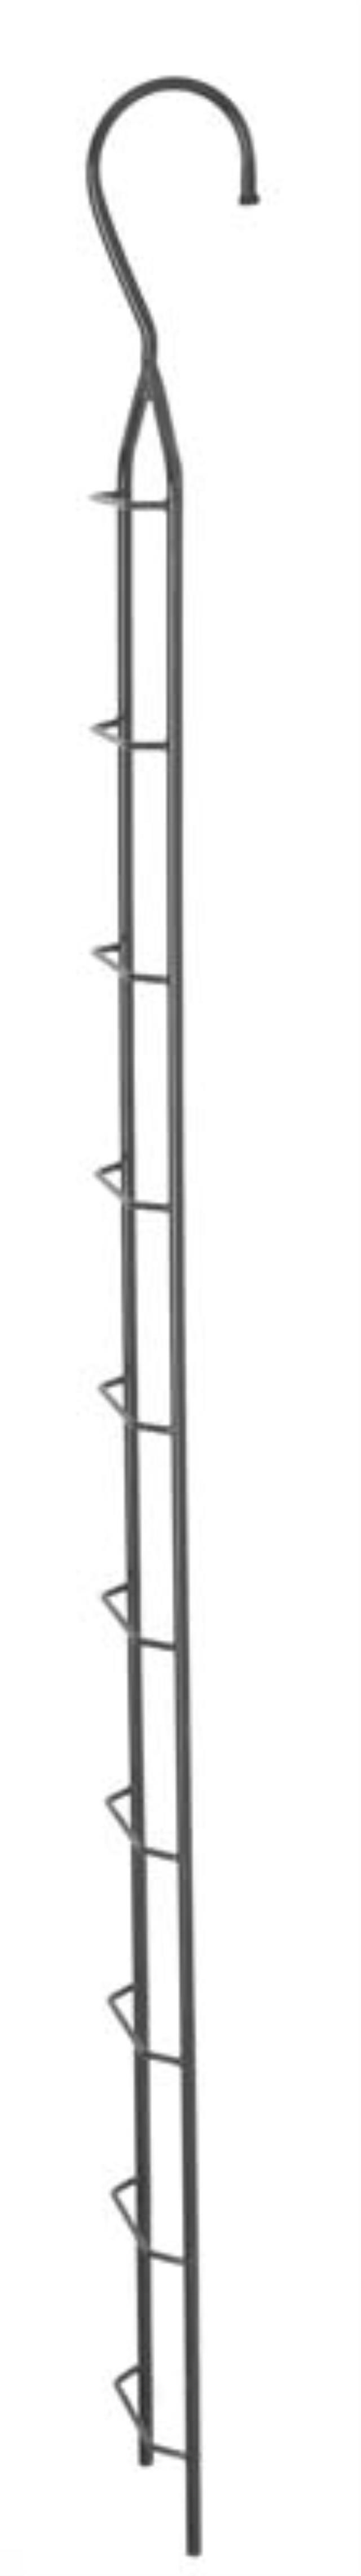 Where to find LADDER, ROOF 14FT in Chicago